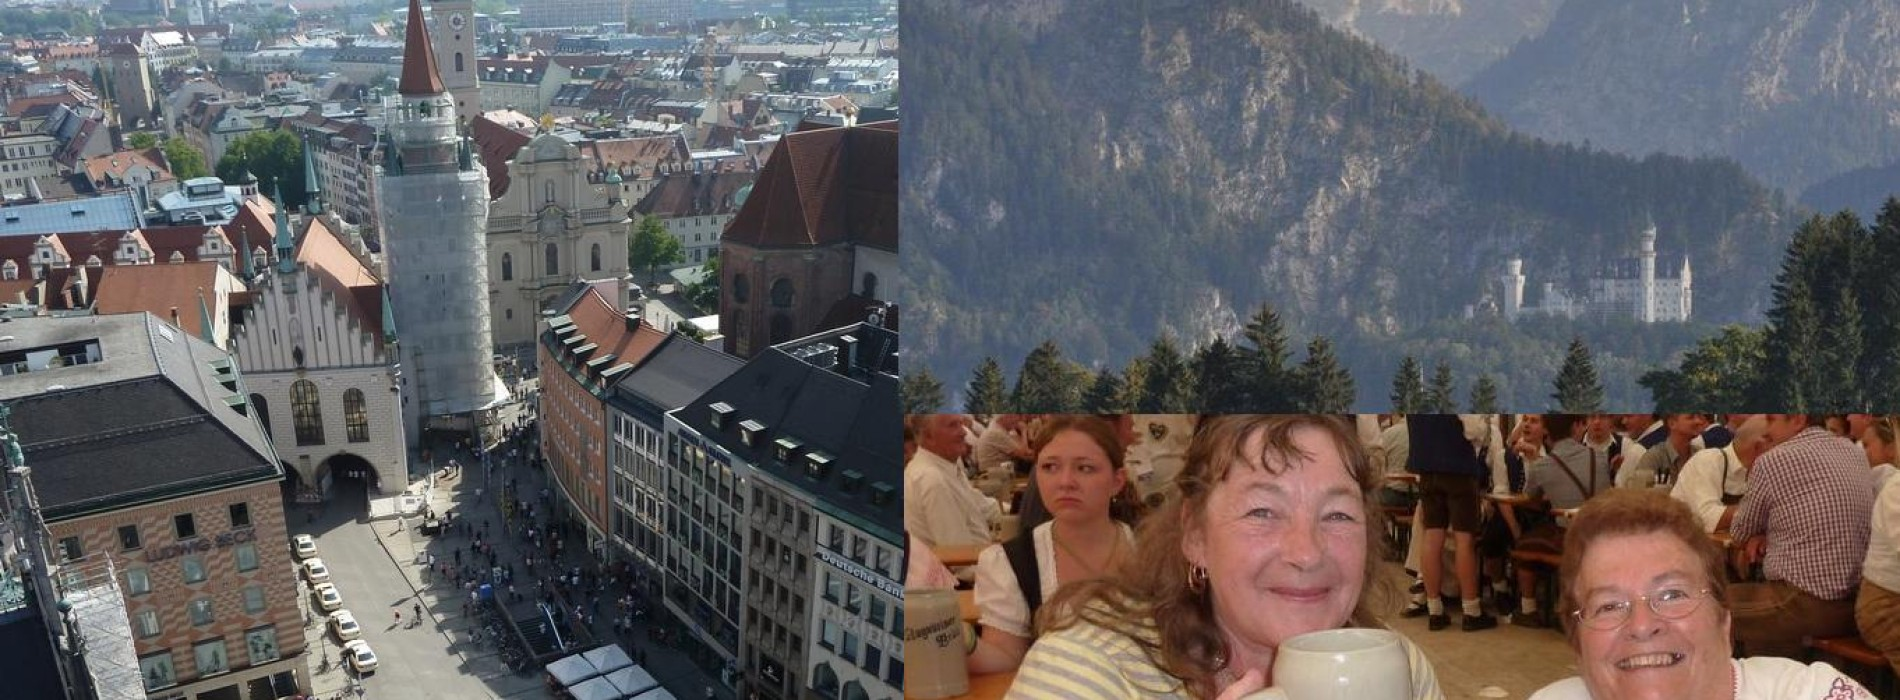 Discovering Bavaria and Makin' Tracks: Part 2